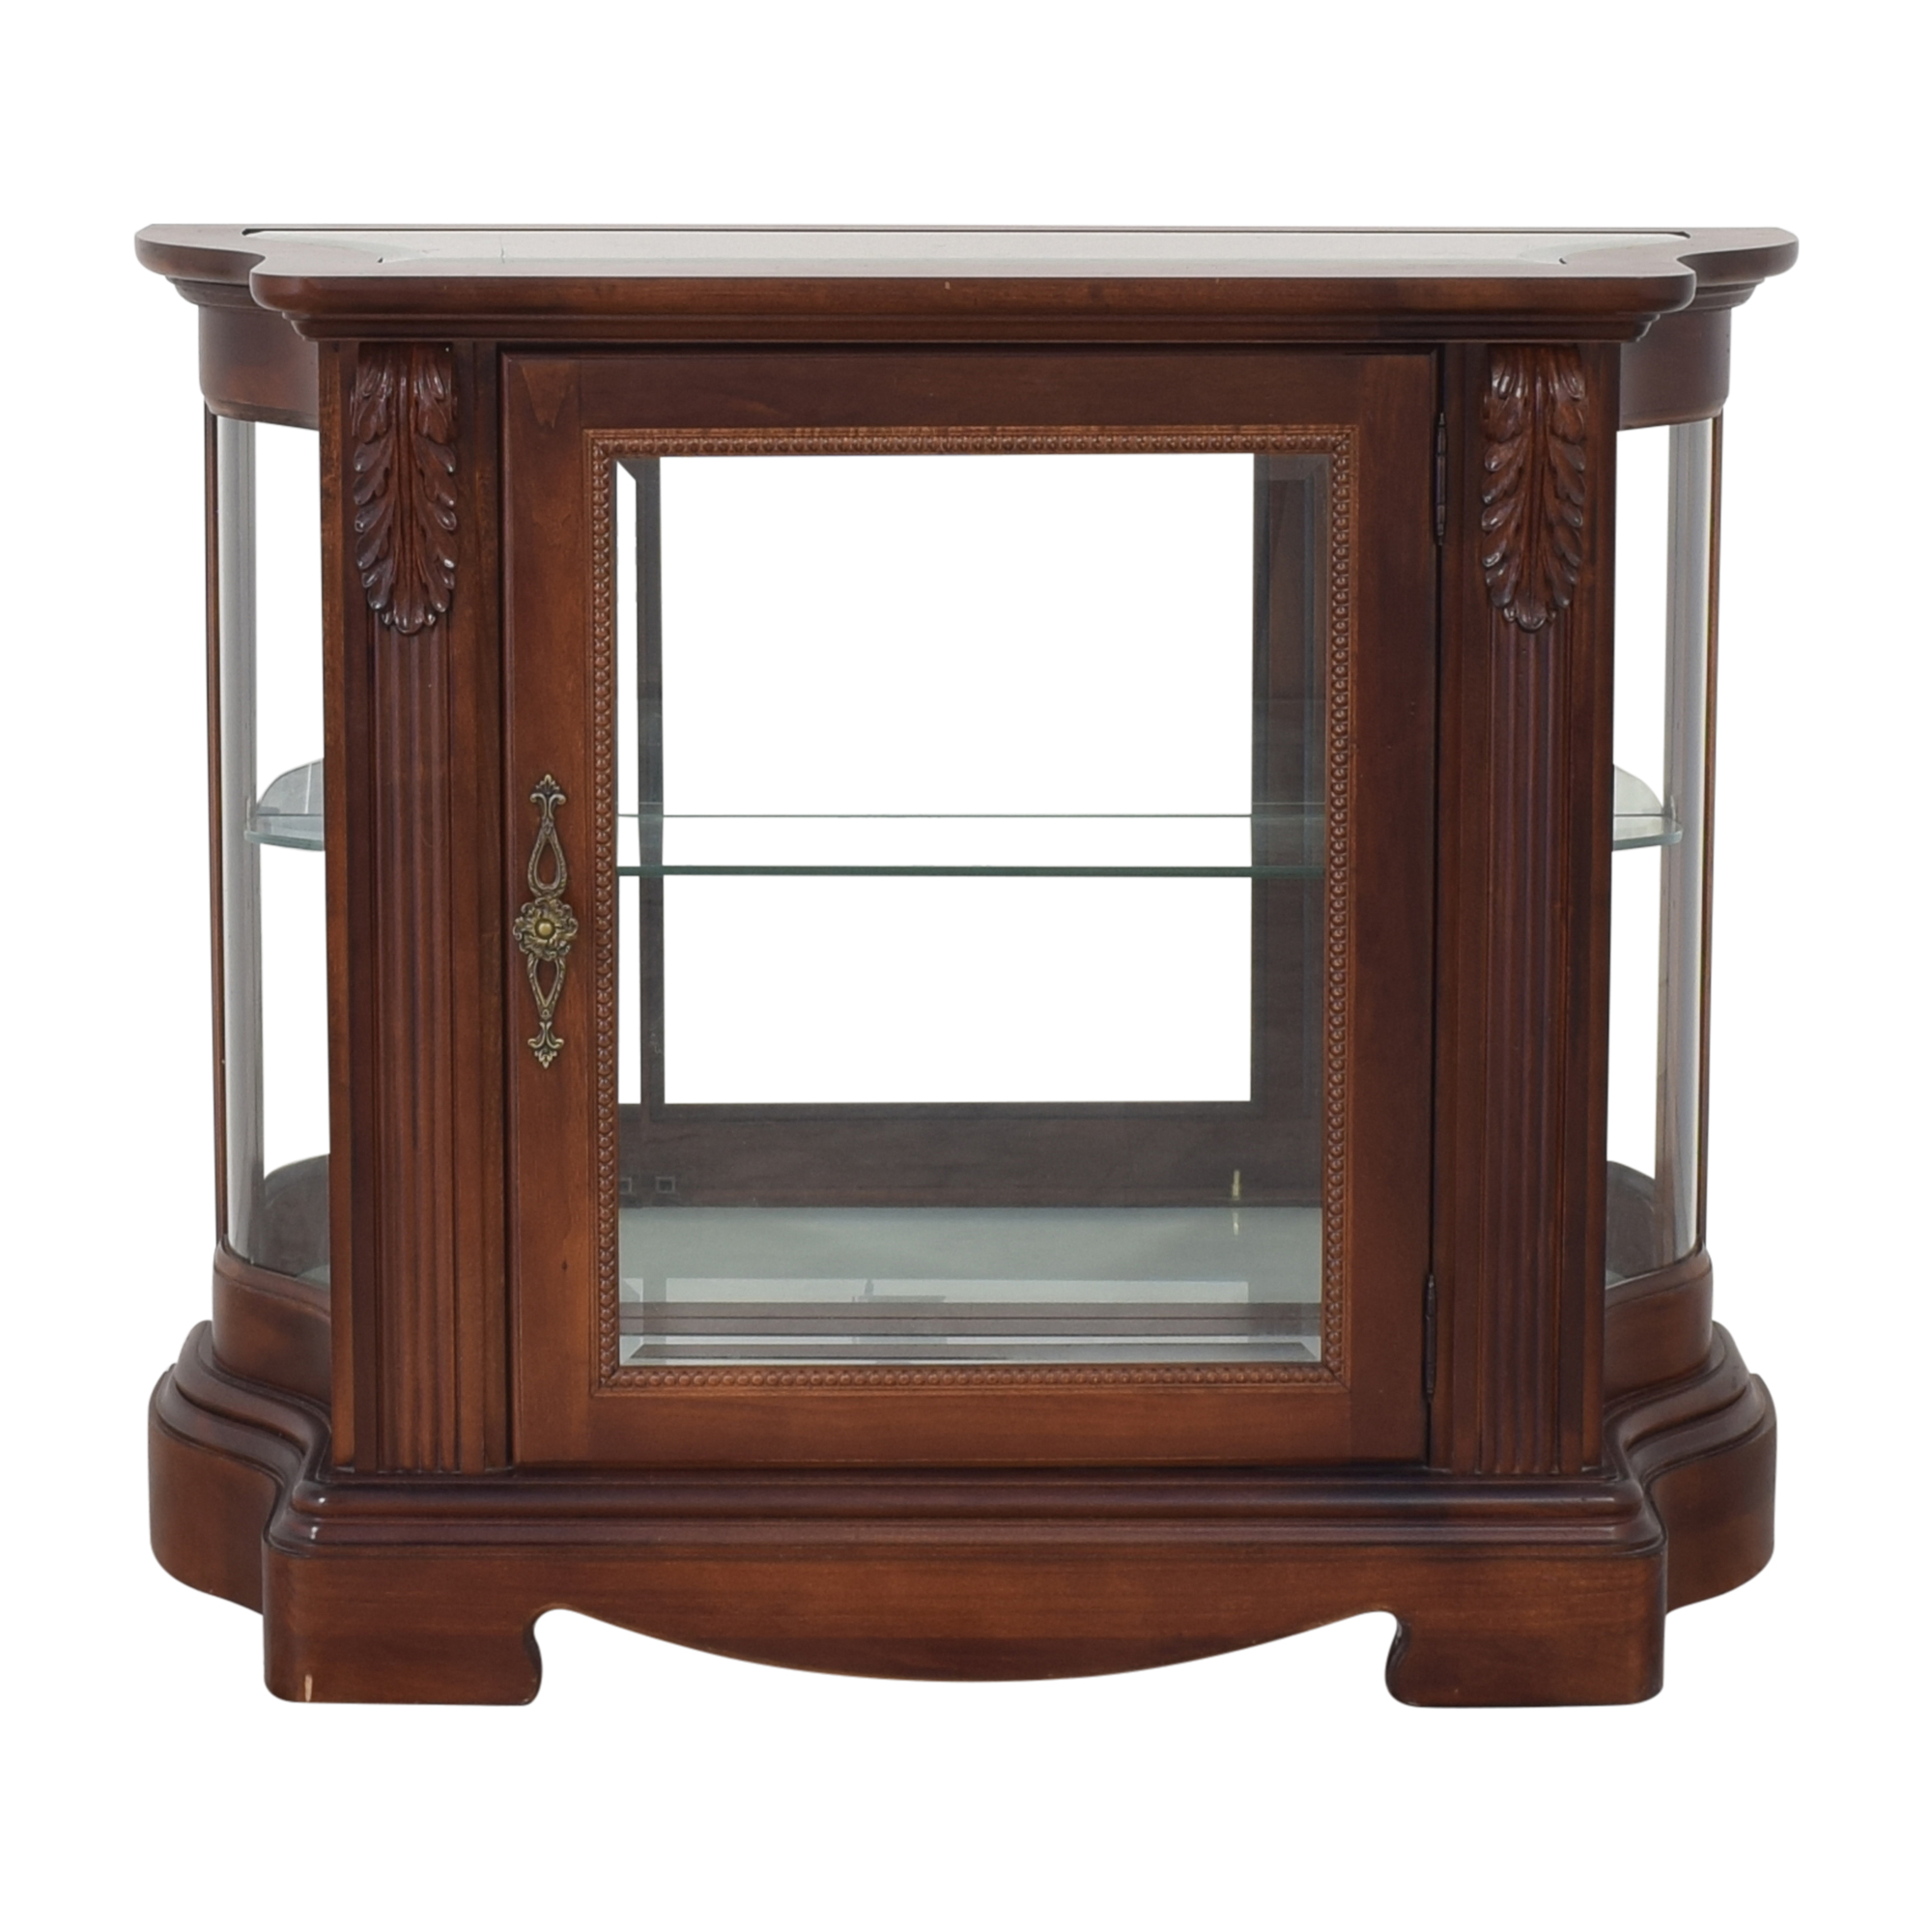 - 45% OFF - Thomasville Thomasville Display Accent Table / Storage